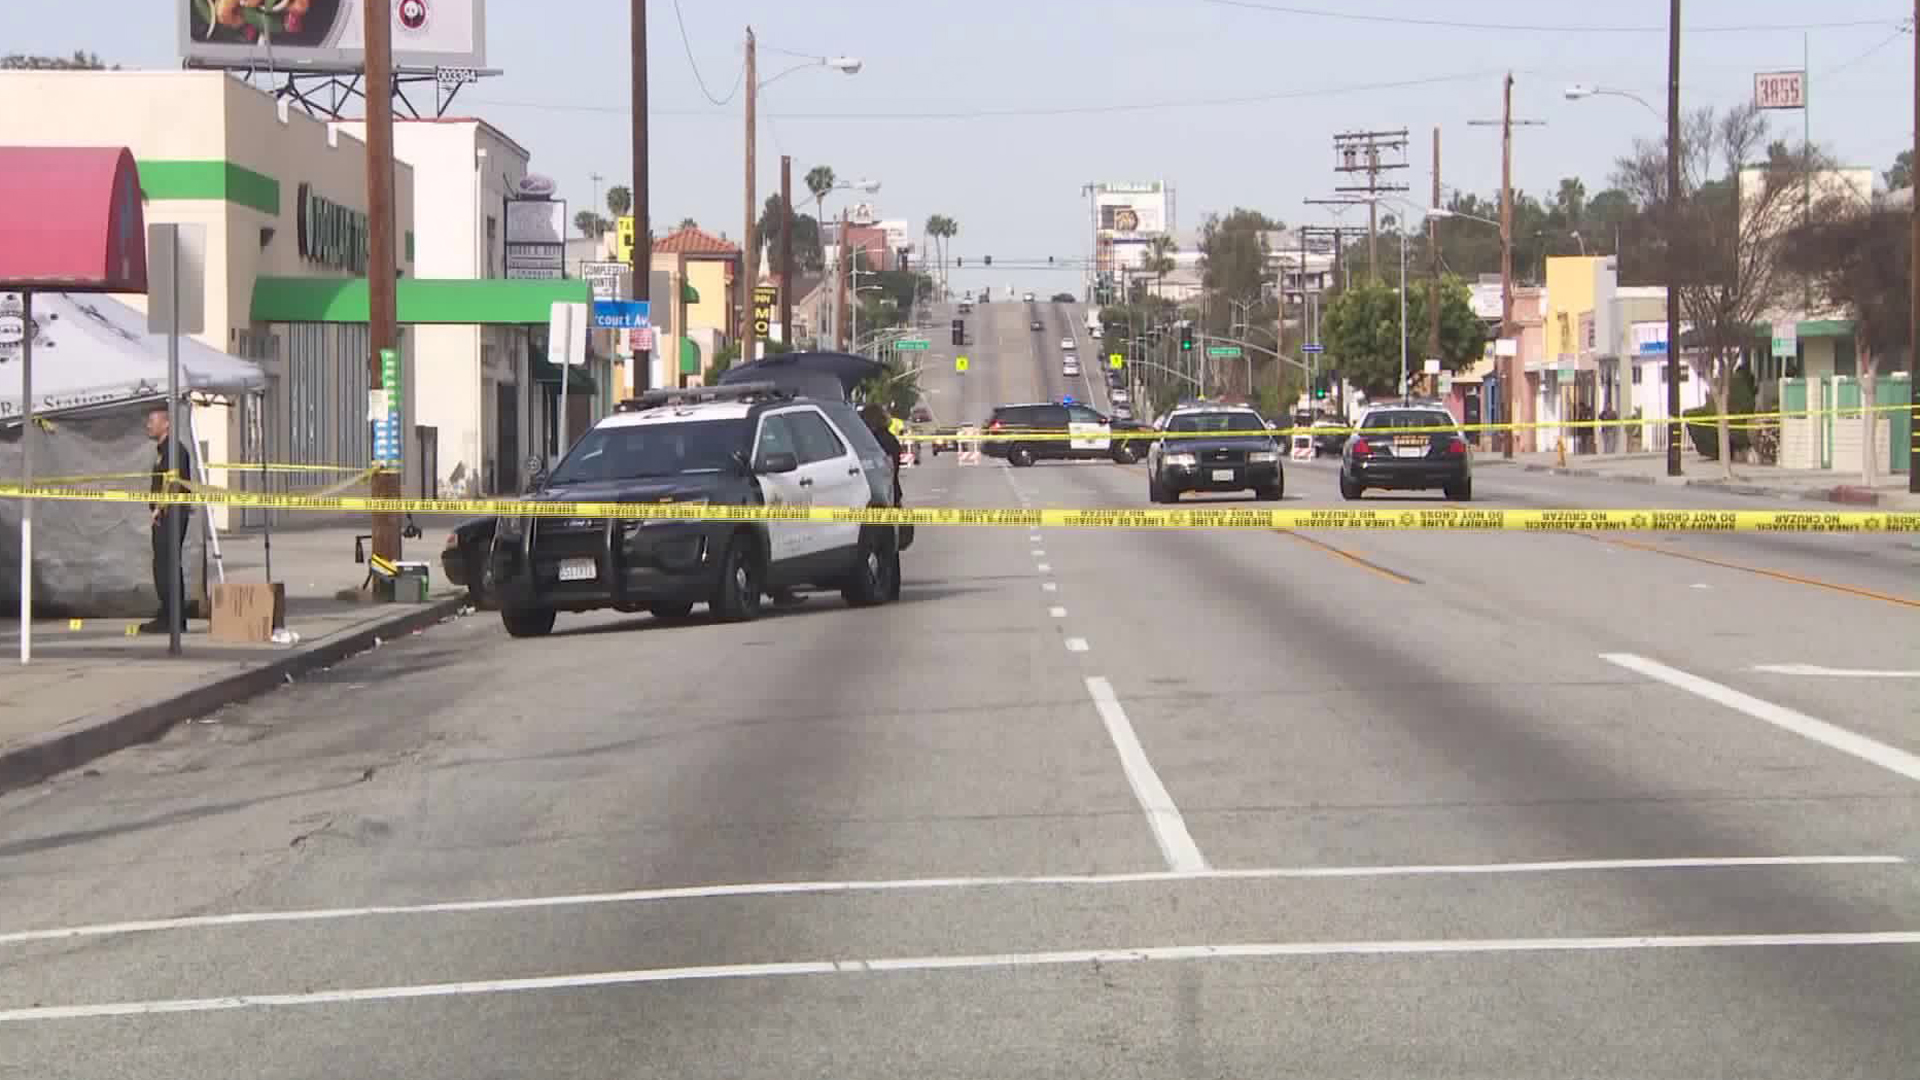 Los Angeles County sheriff's deputies investigate a fatal stabbing in the 3800 block of West Slauson Avenue on April 1, 2019. (Credit: KTLA)